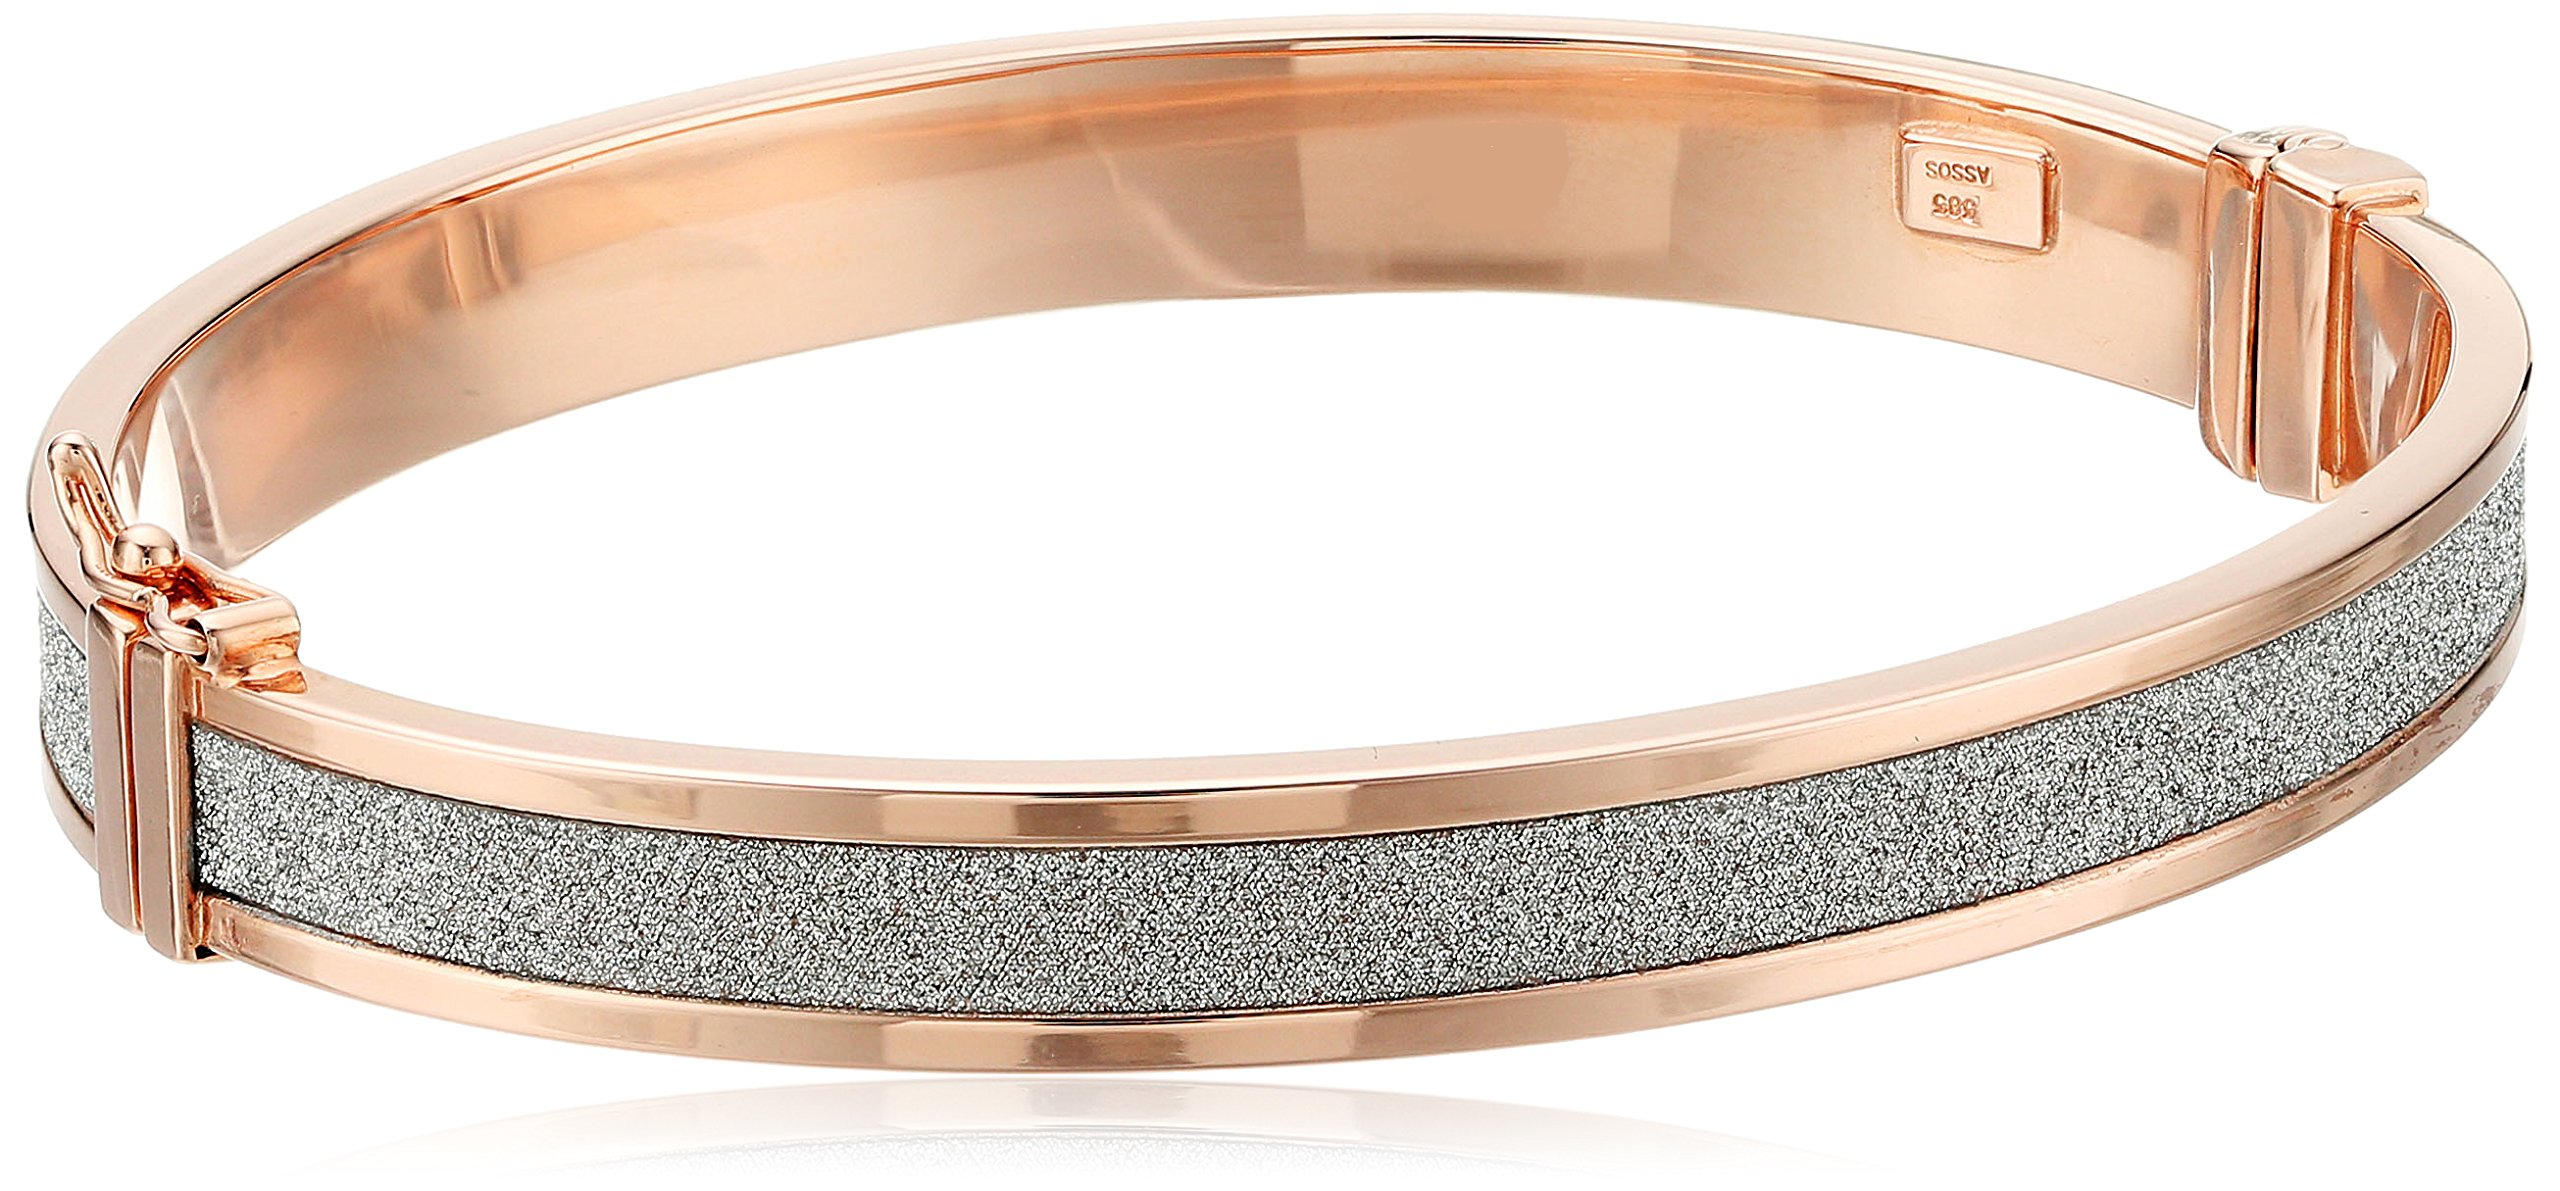 14k Rose Gold Italian 8 mm Tube Hinged with Pave Style Glitter Bangle Bracelet by Amazon Collection